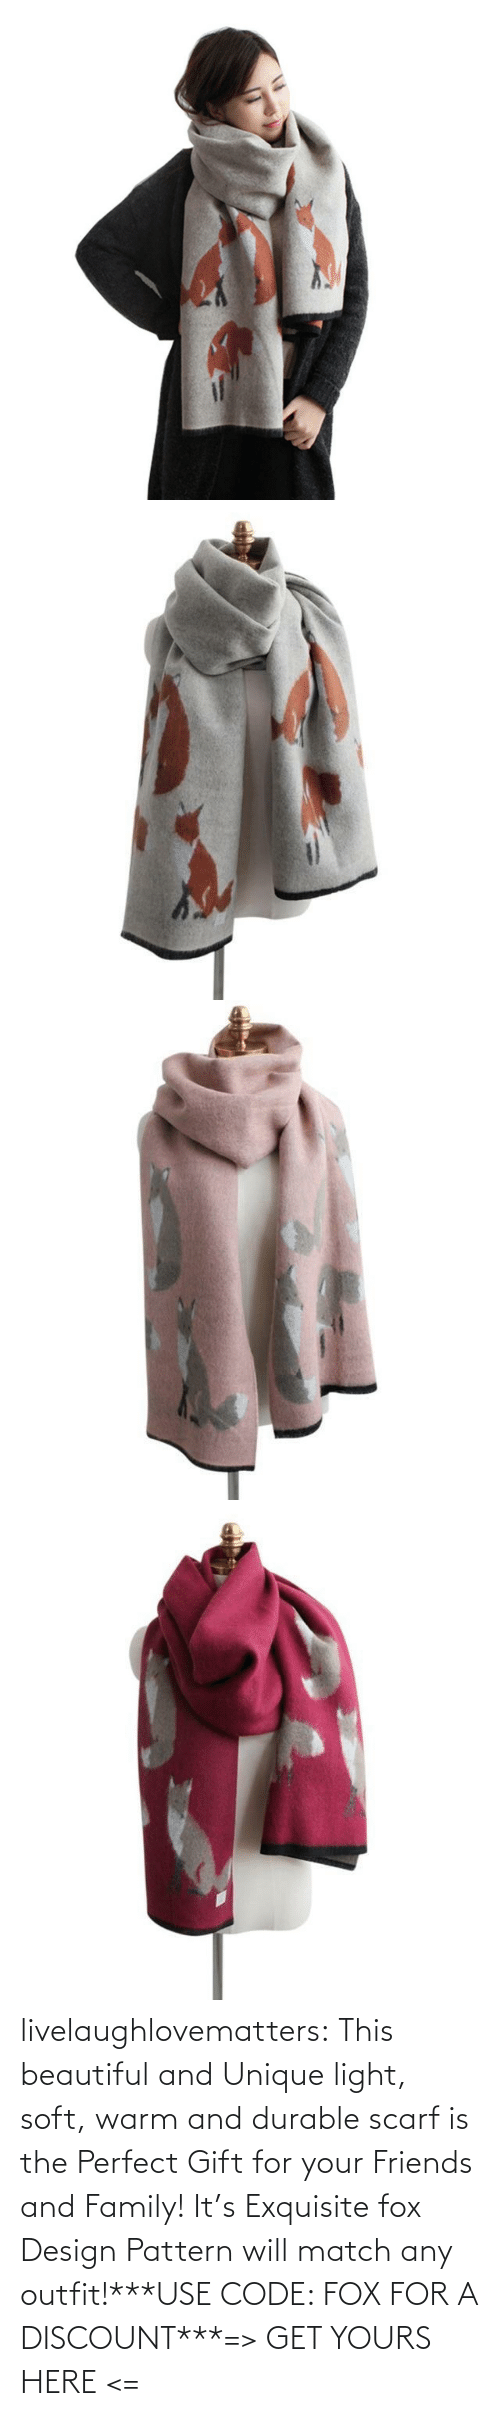 Match: livelaughlovematters:  This beautiful and Unique light, soft, warm and durable scarf is the Perfect Gift for your Friends and Family! It's Exquisite fox Design Pattern will match any outfit!***USE CODE: FOX FOR A DISCOUNT***=> GET YOURS HERE <=